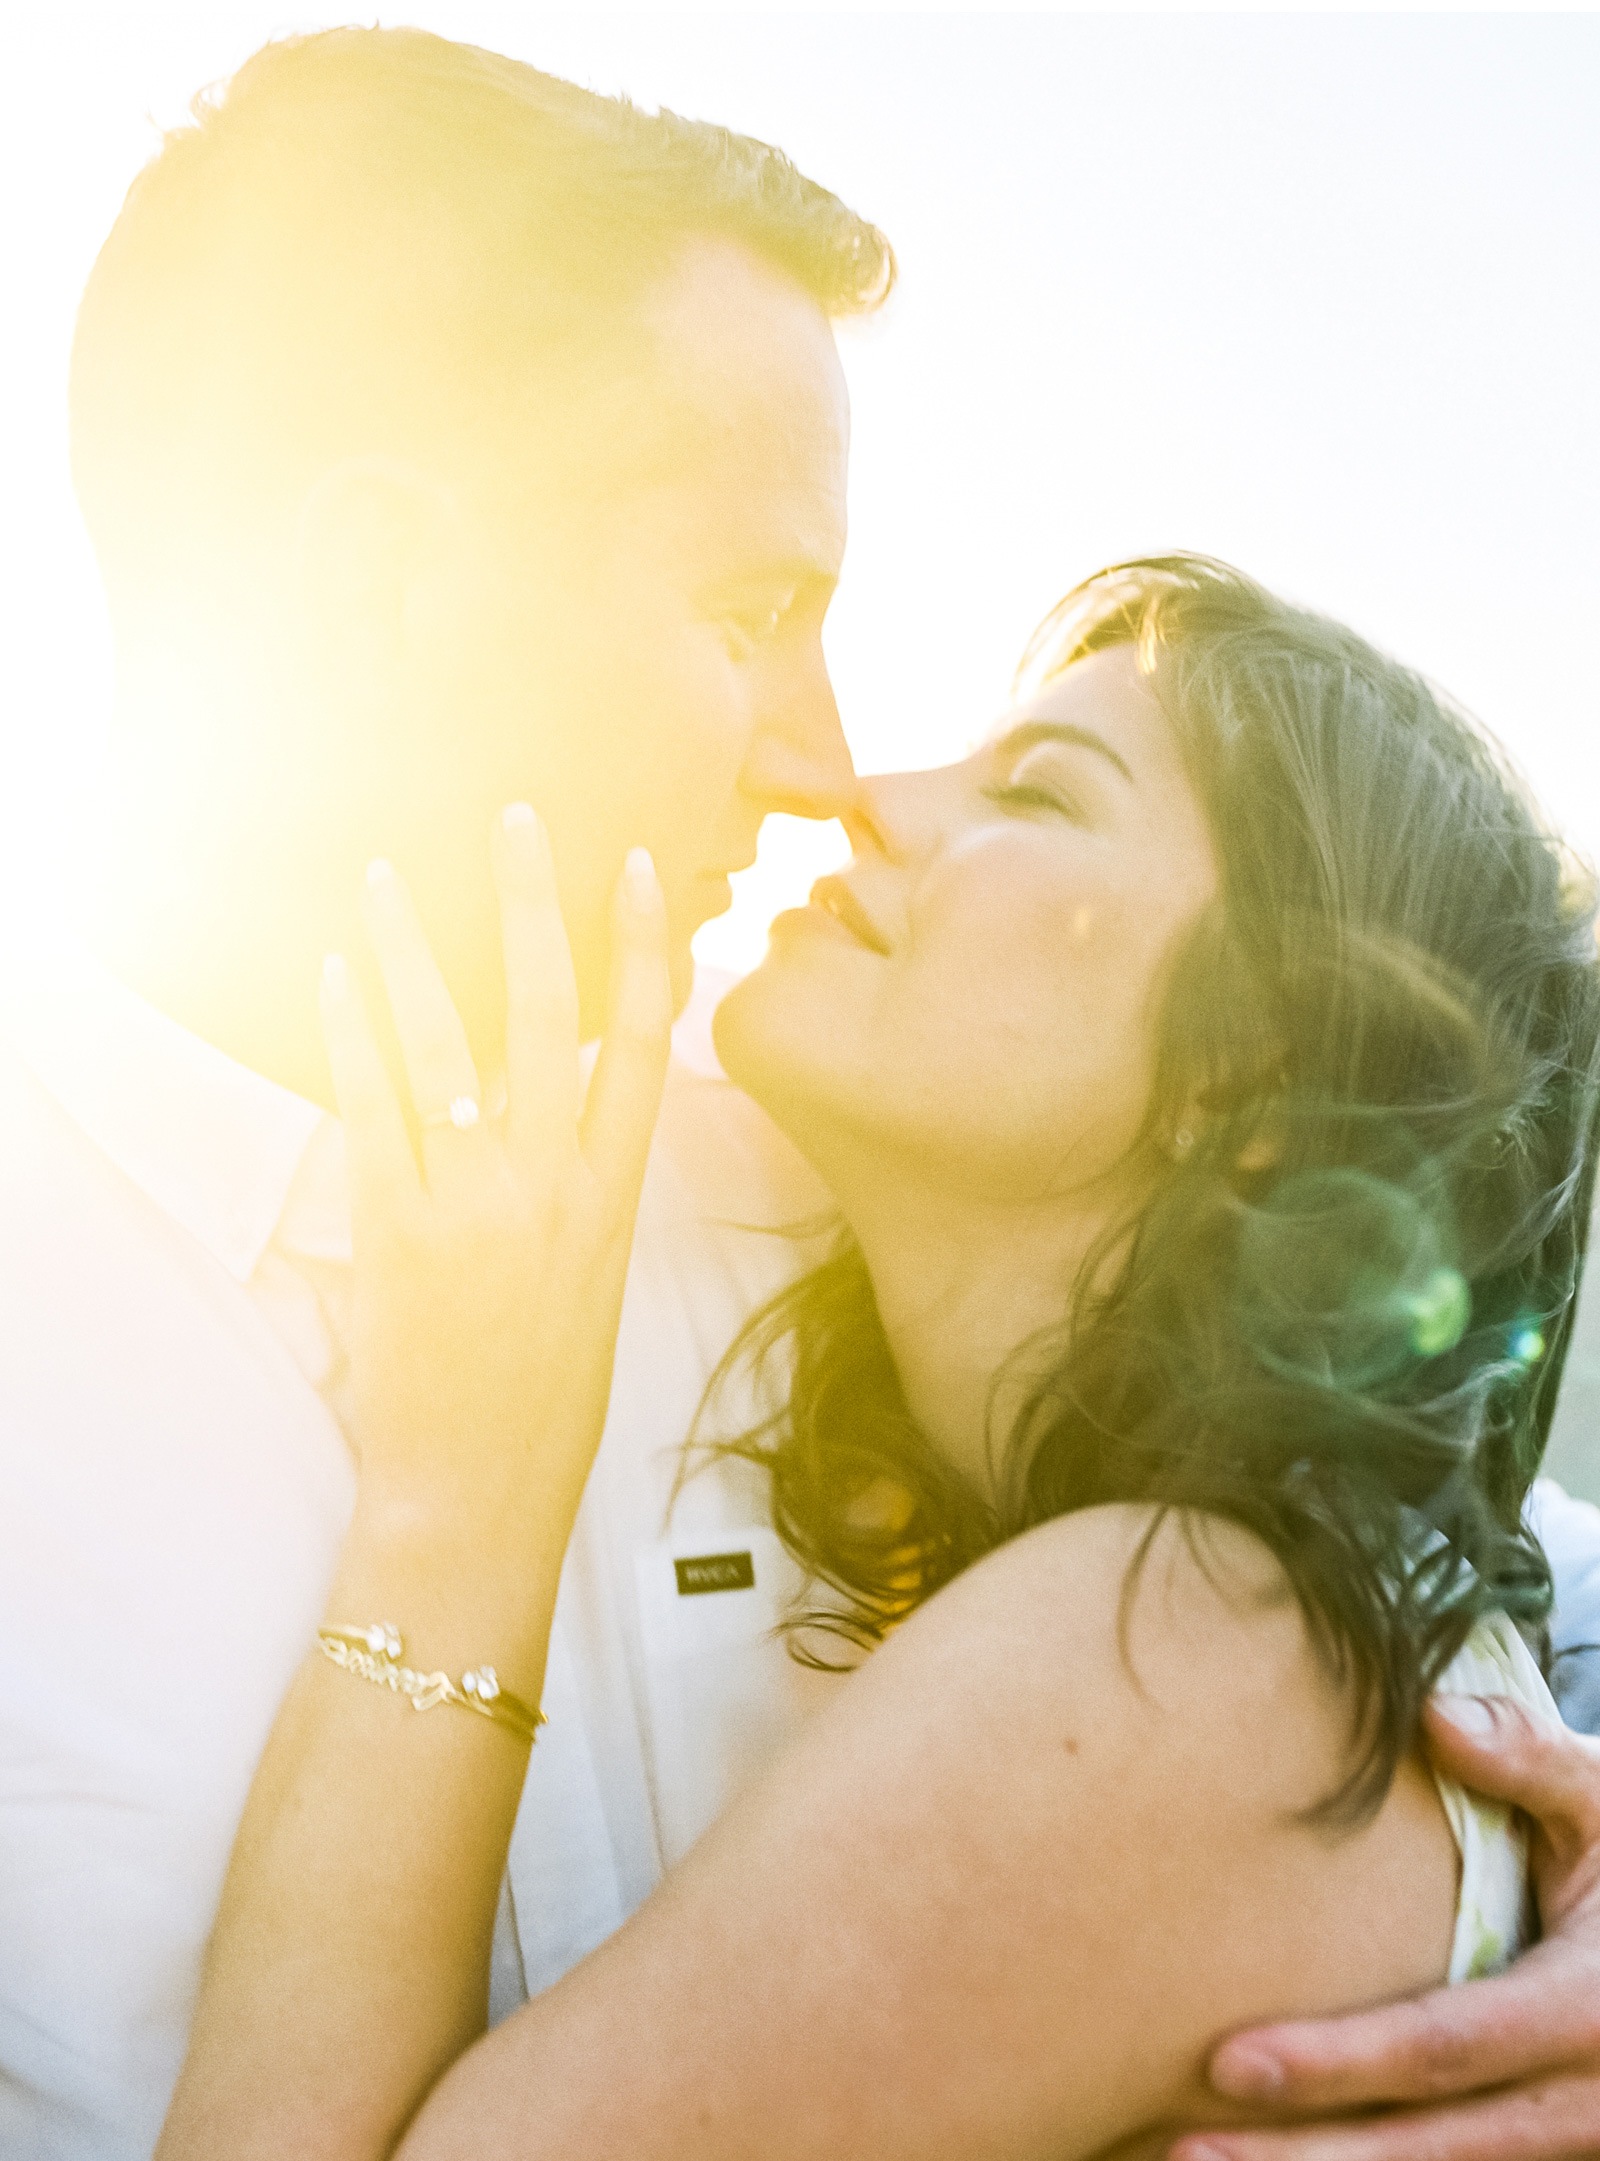 Natalie-Schutt-Photography-Malibu-Engagements-Malibu-Wedding-Beachside-Wedding-Fine-Art-Wedding-Photography-Southern-California-Brides_03.jpg